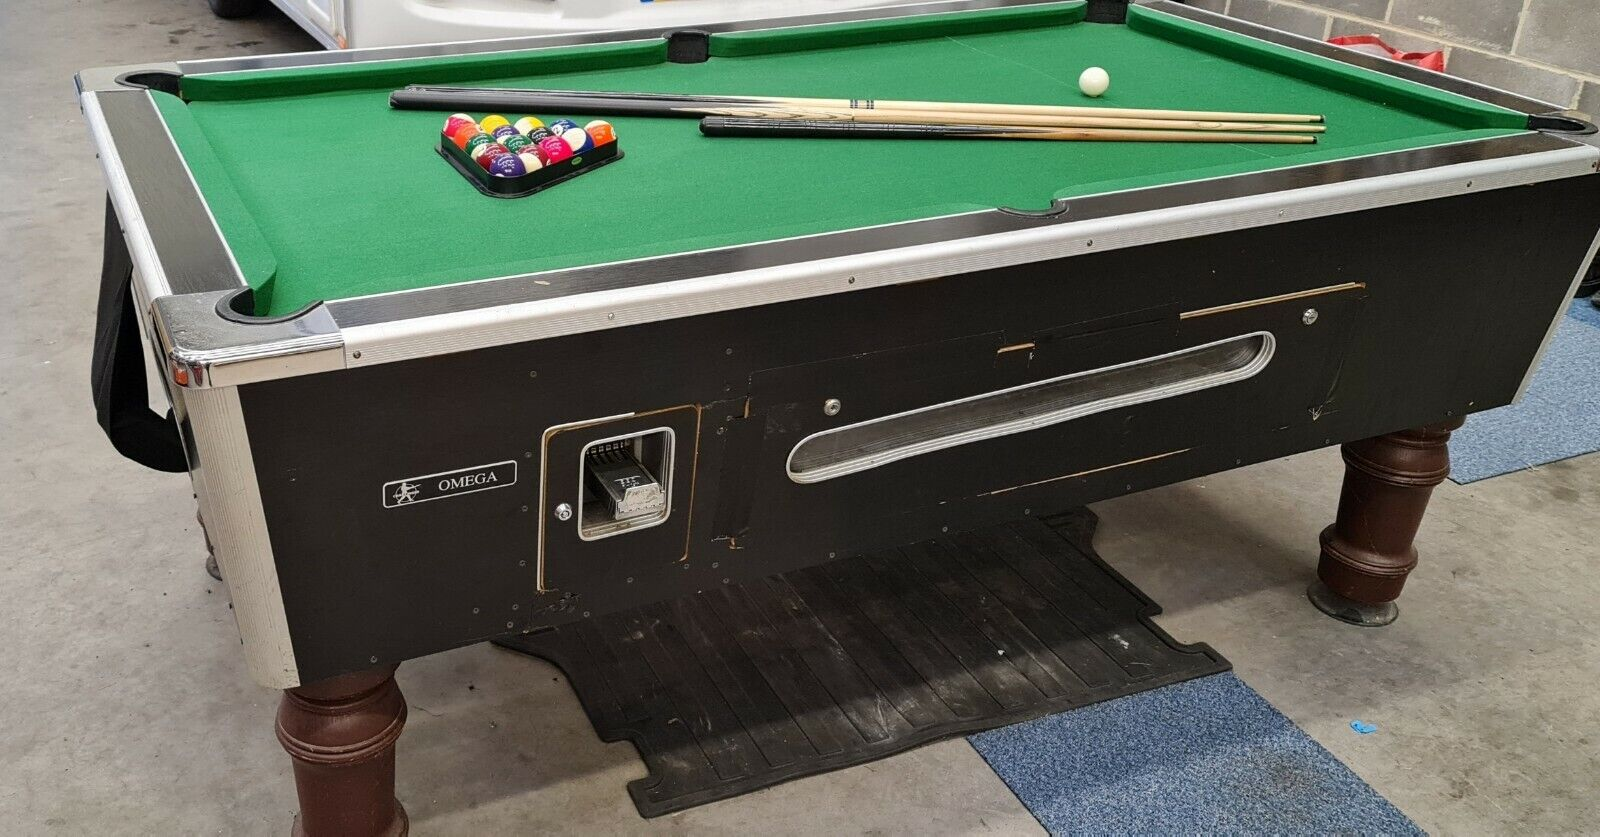 Full size pool table with cues and balls